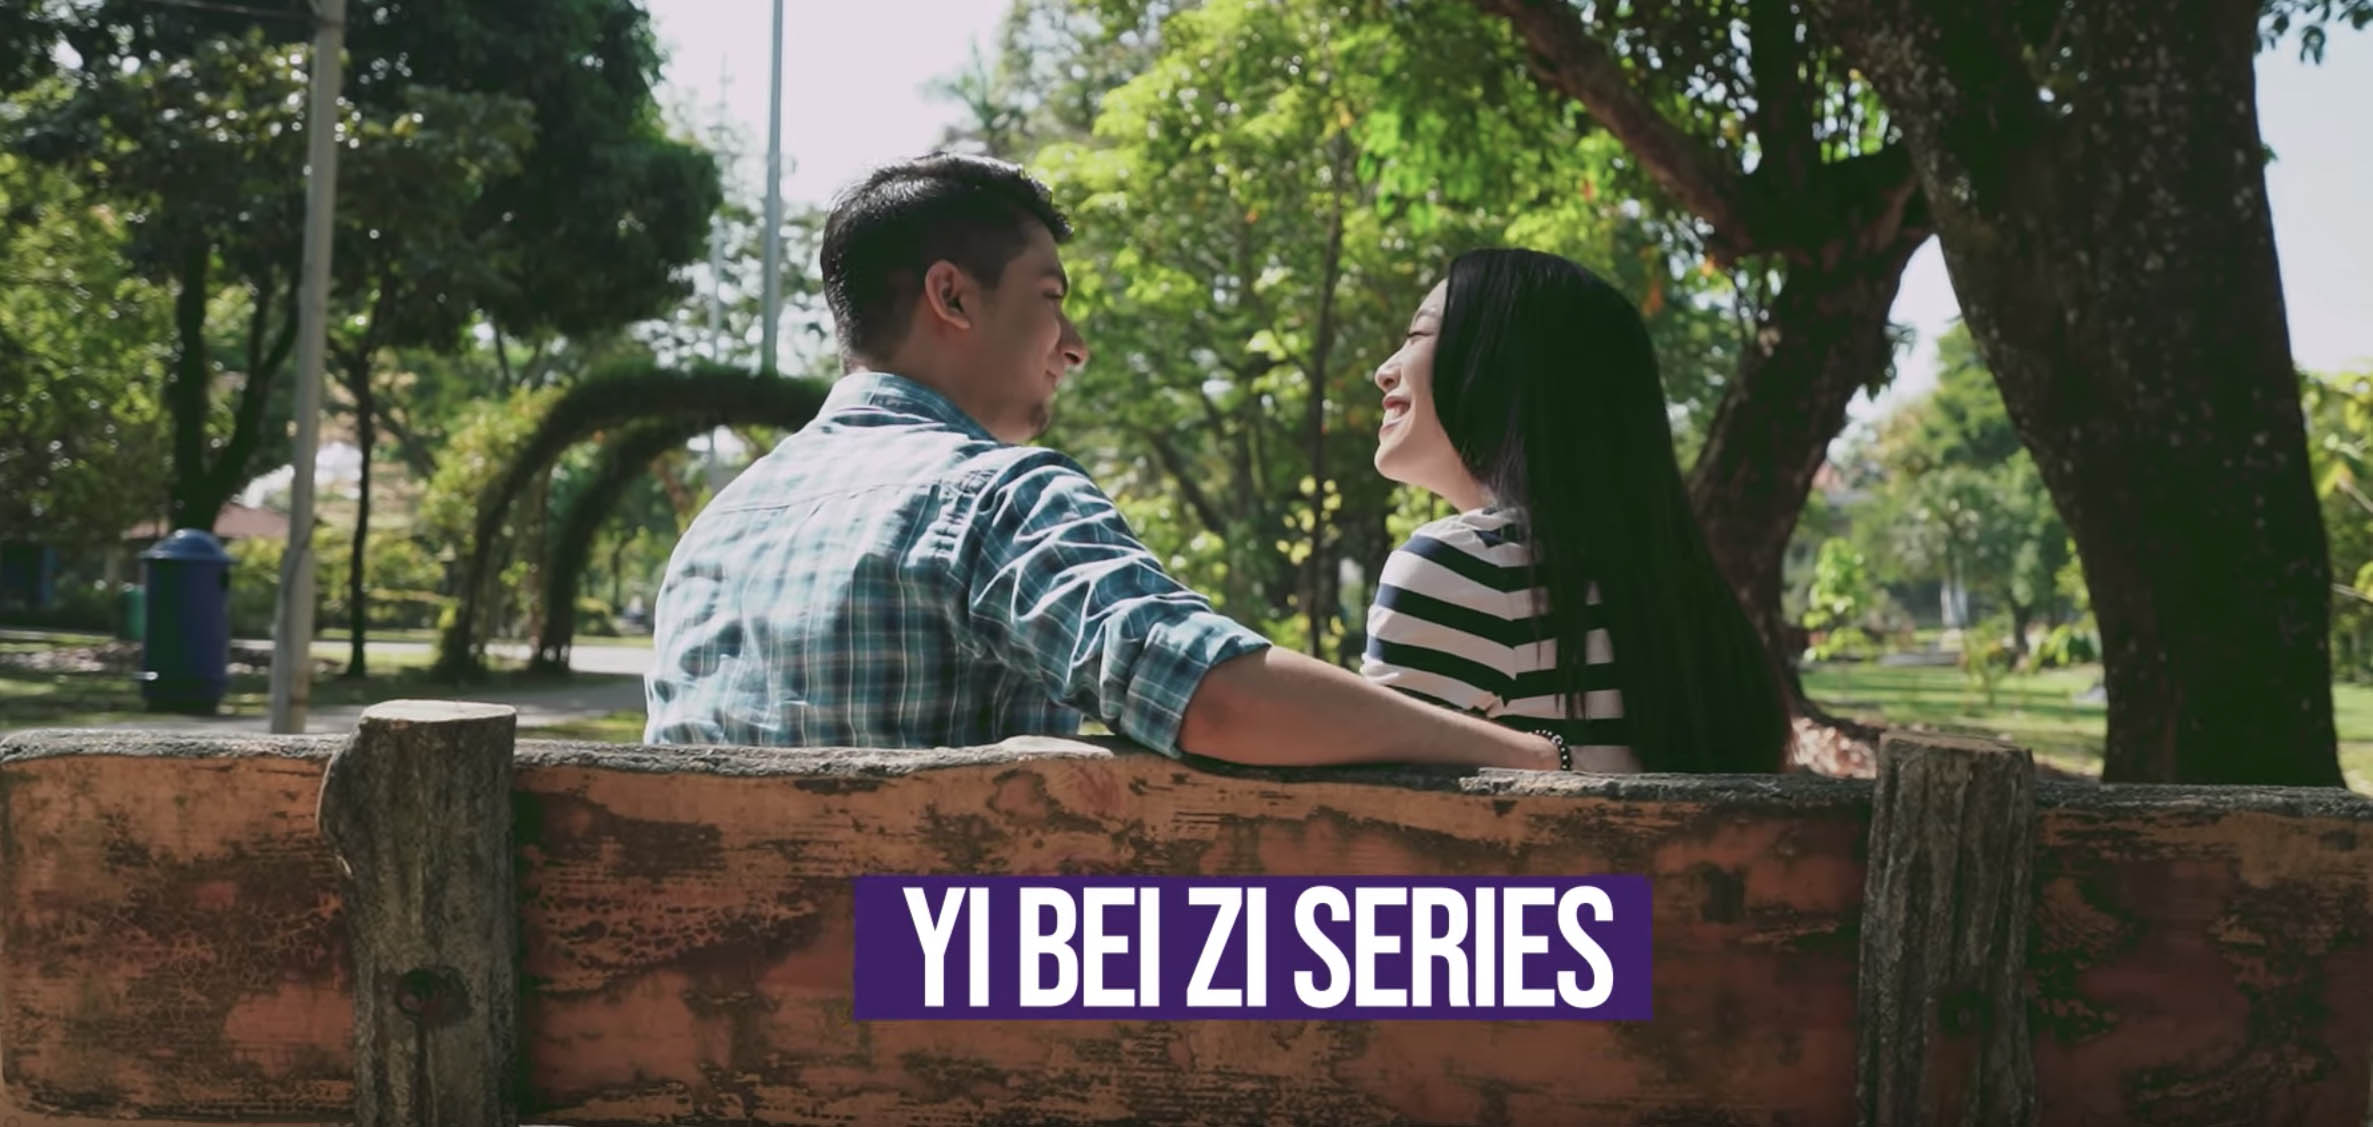 Our Works Yibeizi Series - Digital Campaign Video